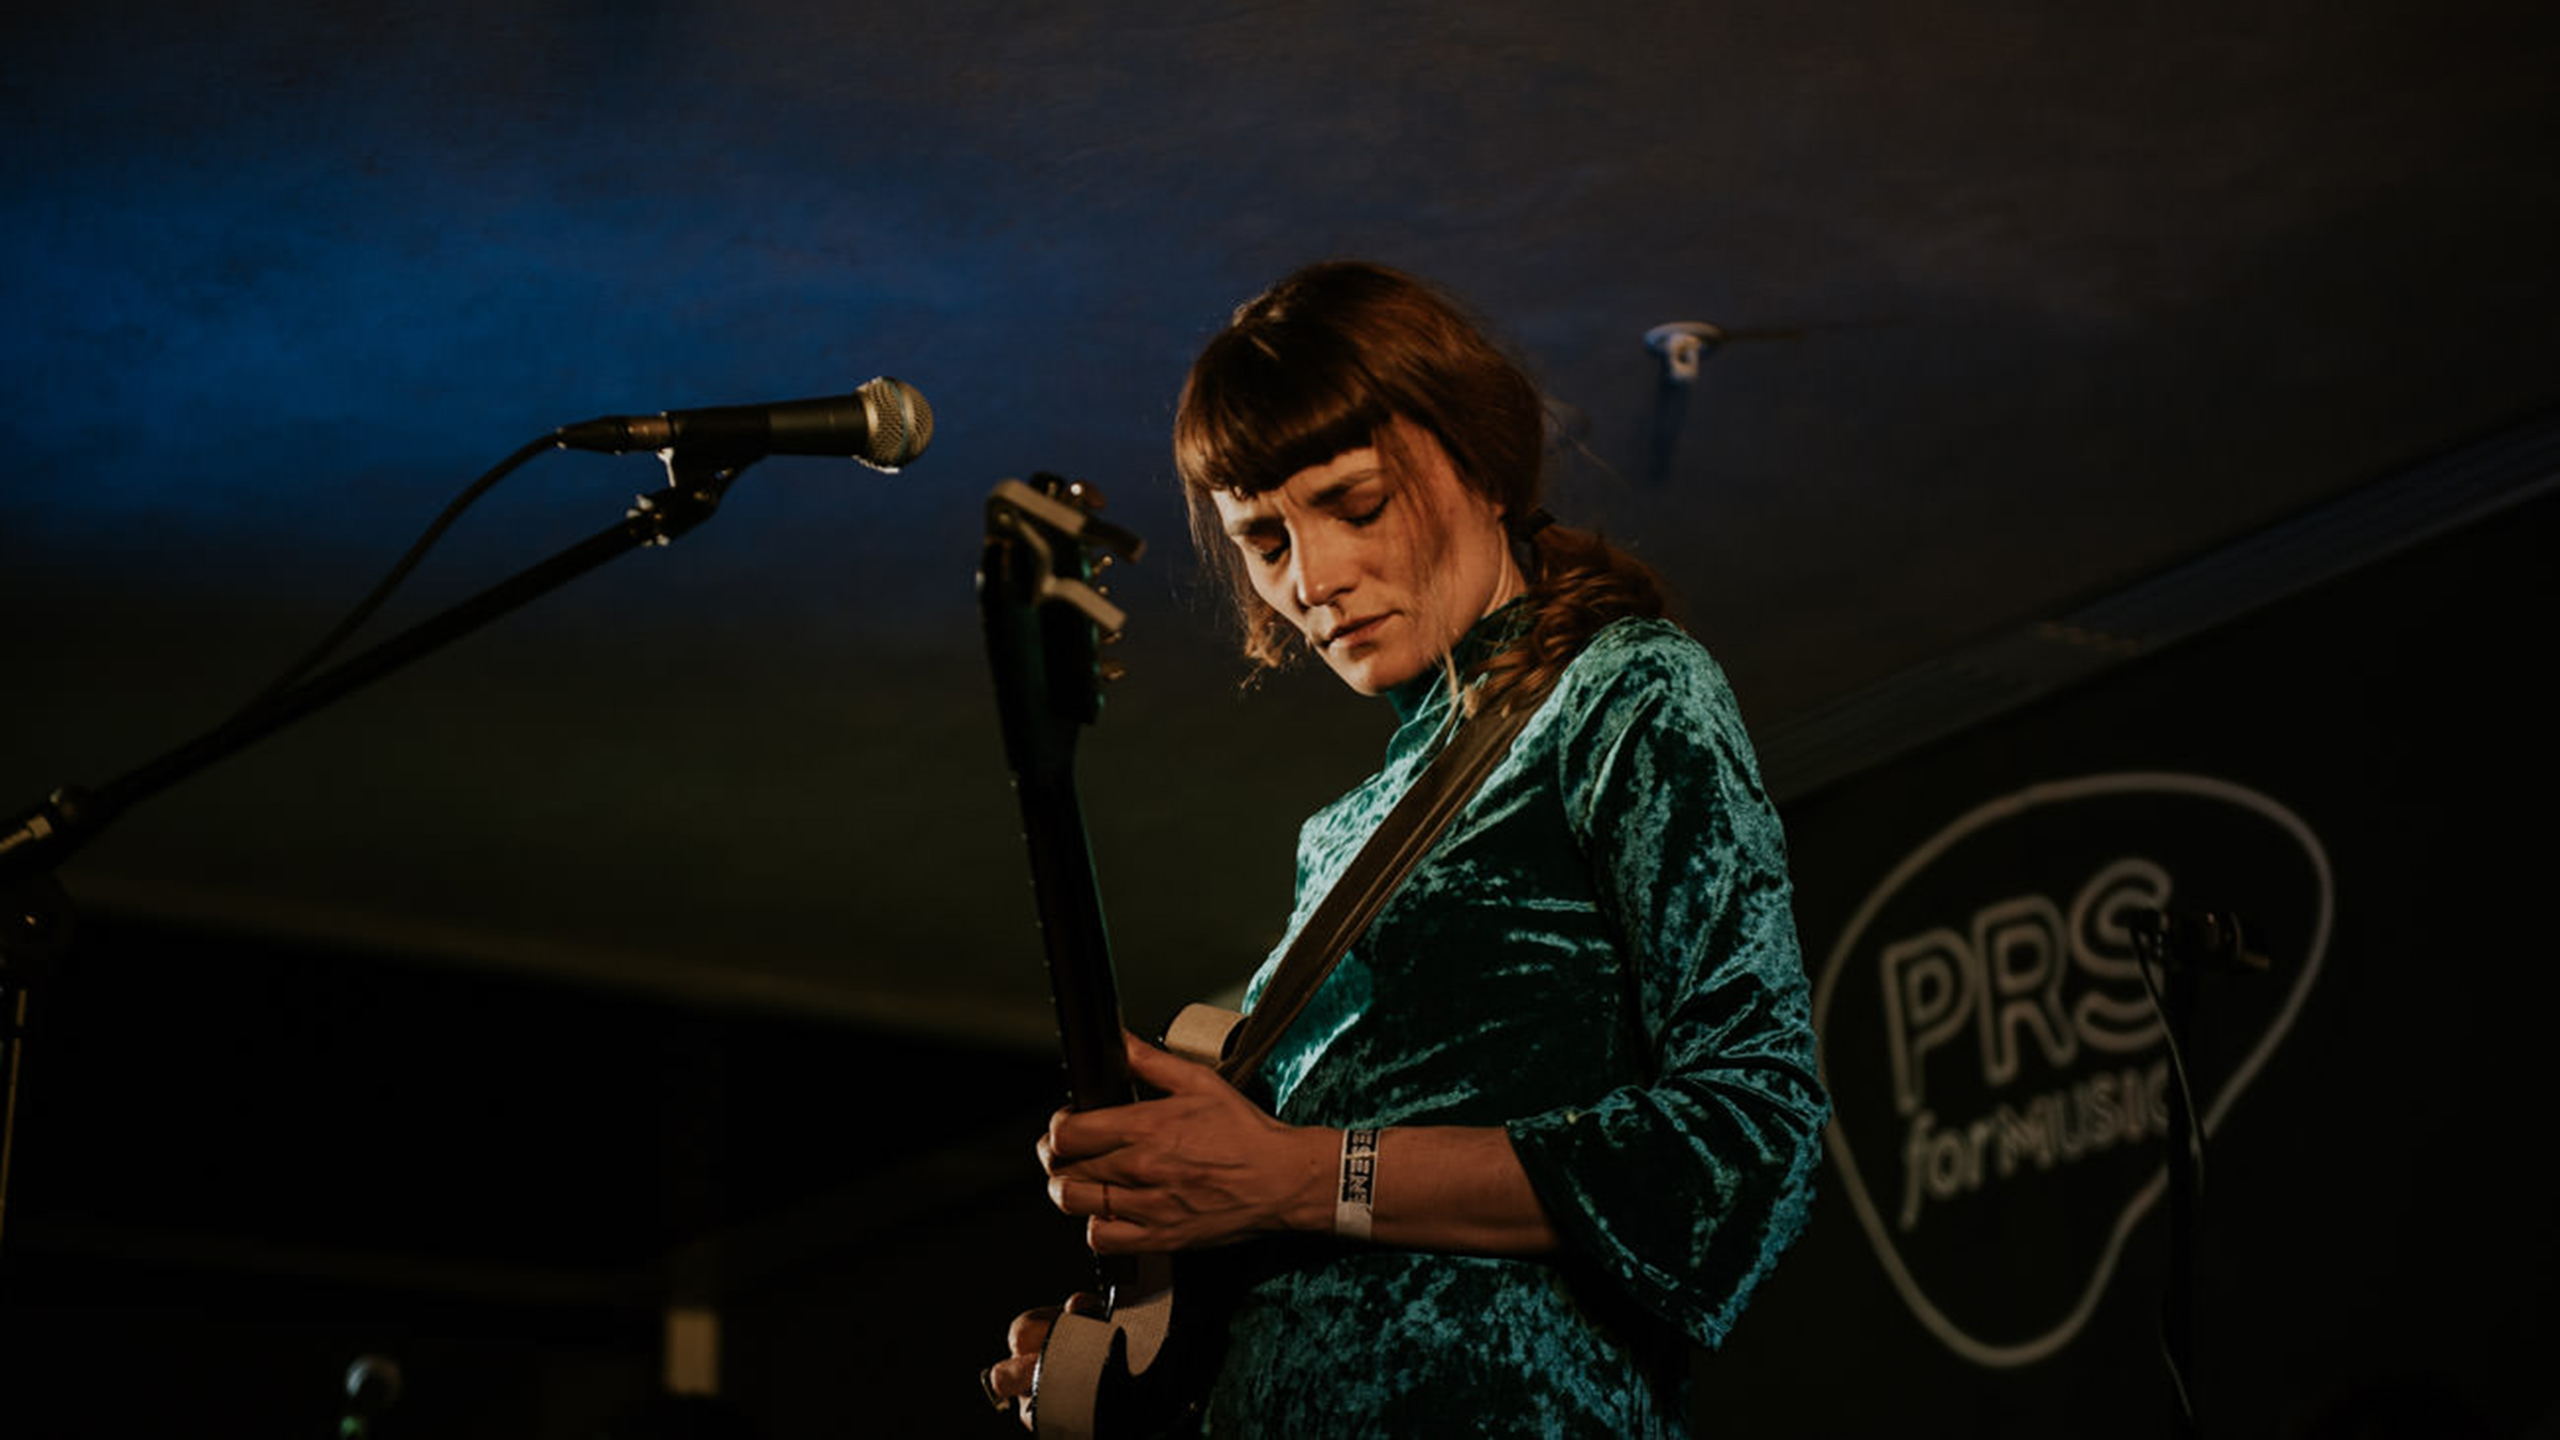 Halo Maud, wearing a green velvet dress, playing guitar on stage at PRS for Music Presents